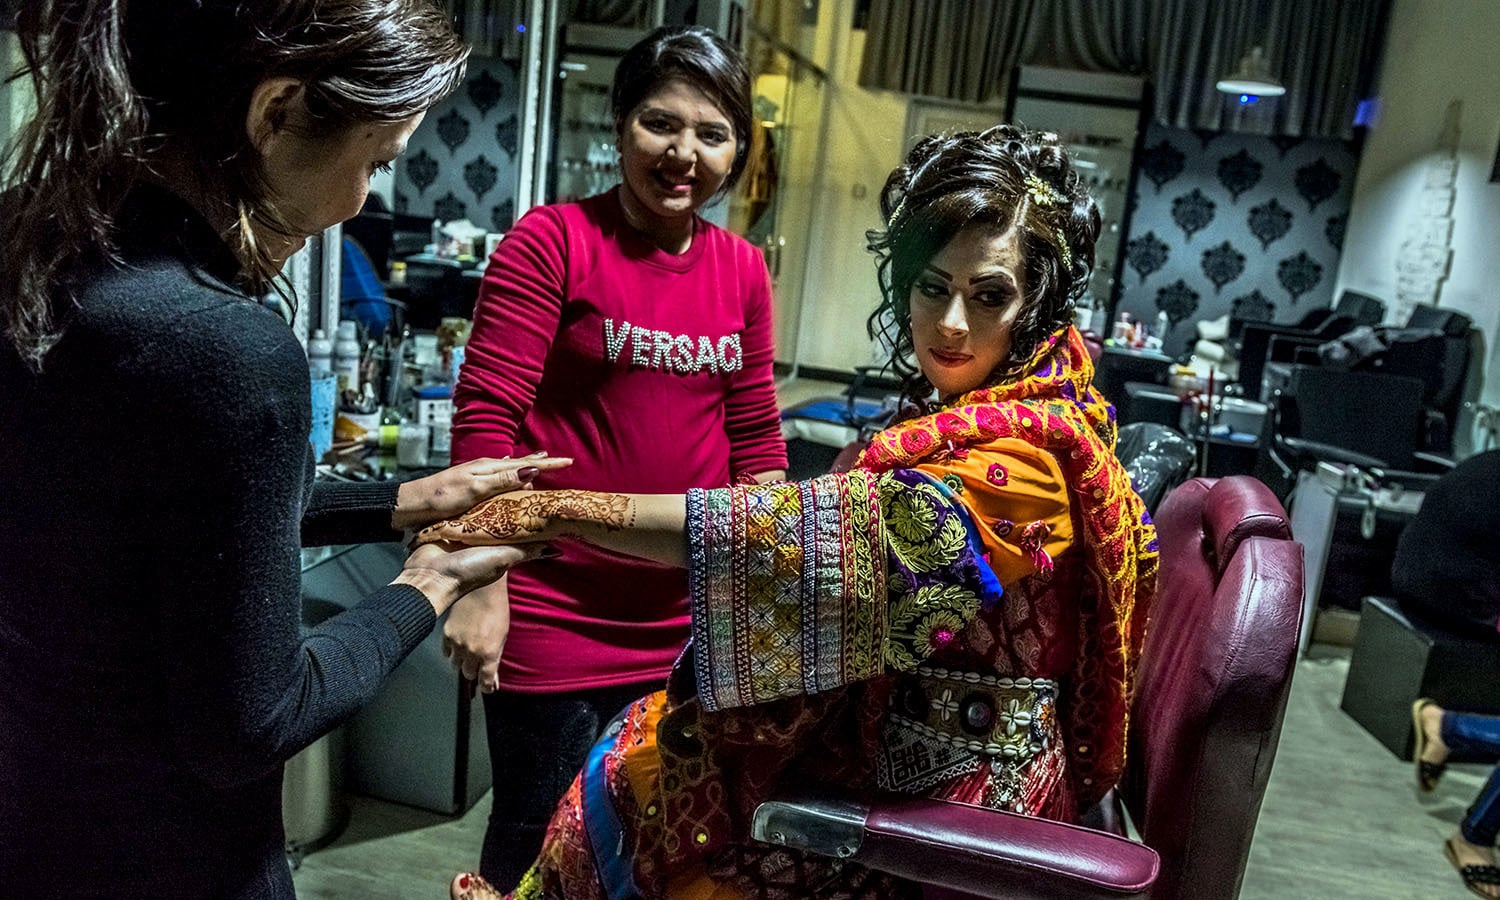 An Afghan bride dressed in a traditional wedding gown sits as a beautician applies moisturiser ahead of her wedding party at a beauty parlour in Kabul. — AFP